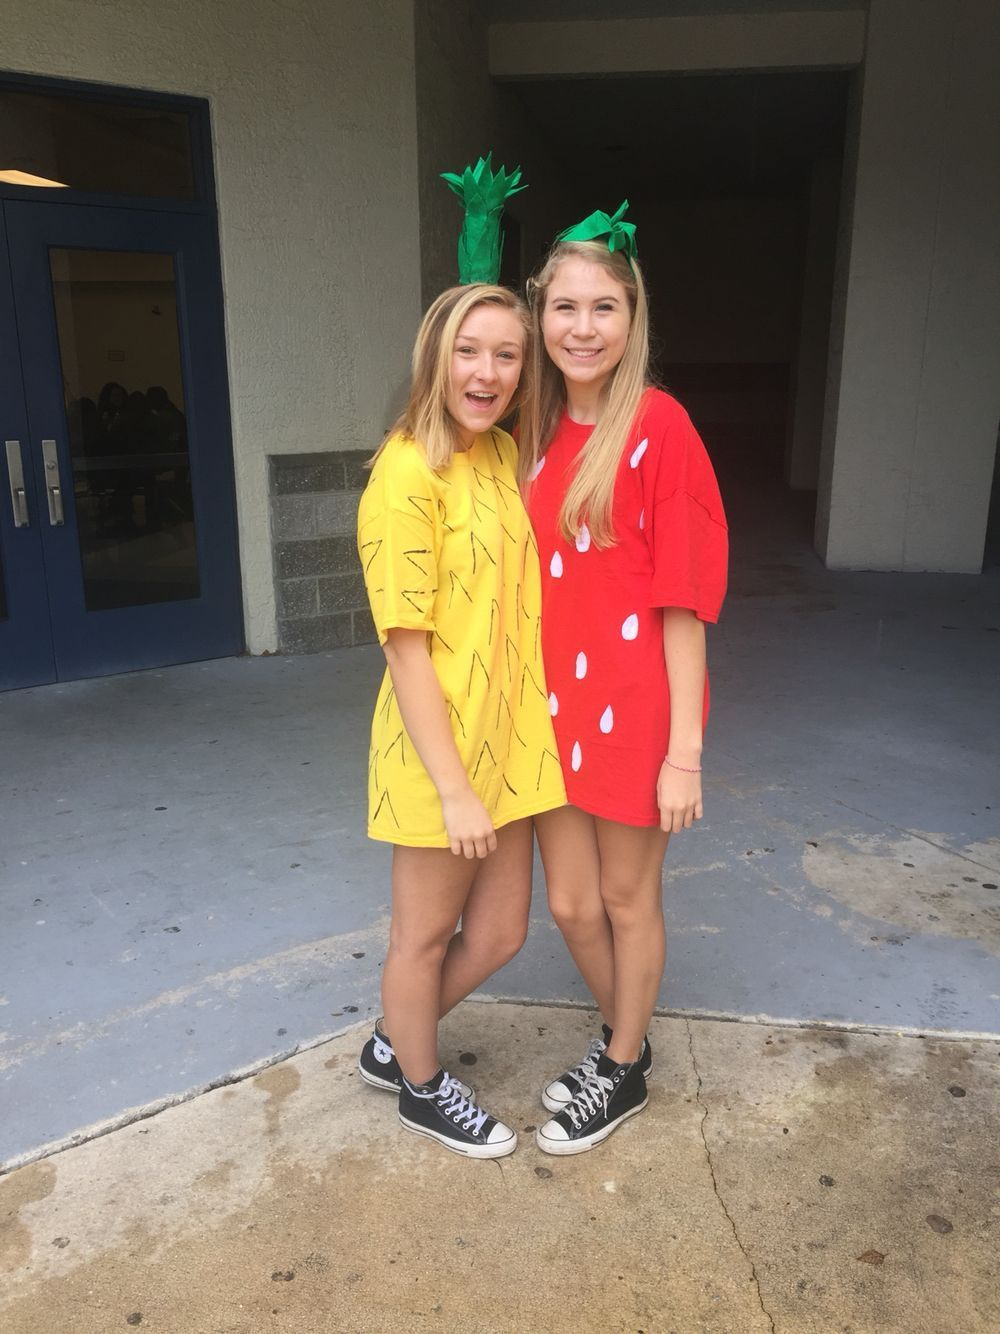 Homecoming week! Character day strawberry and pineapple #characterdayspiritweek Homecoming week! Character day strawberry and pineapple #characterdayspiritweek Homecoming week! Character day strawberry and pineapple #characterdayspiritweek Homecoming week! Character day strawberry and pineapple #characterdayspiritweek